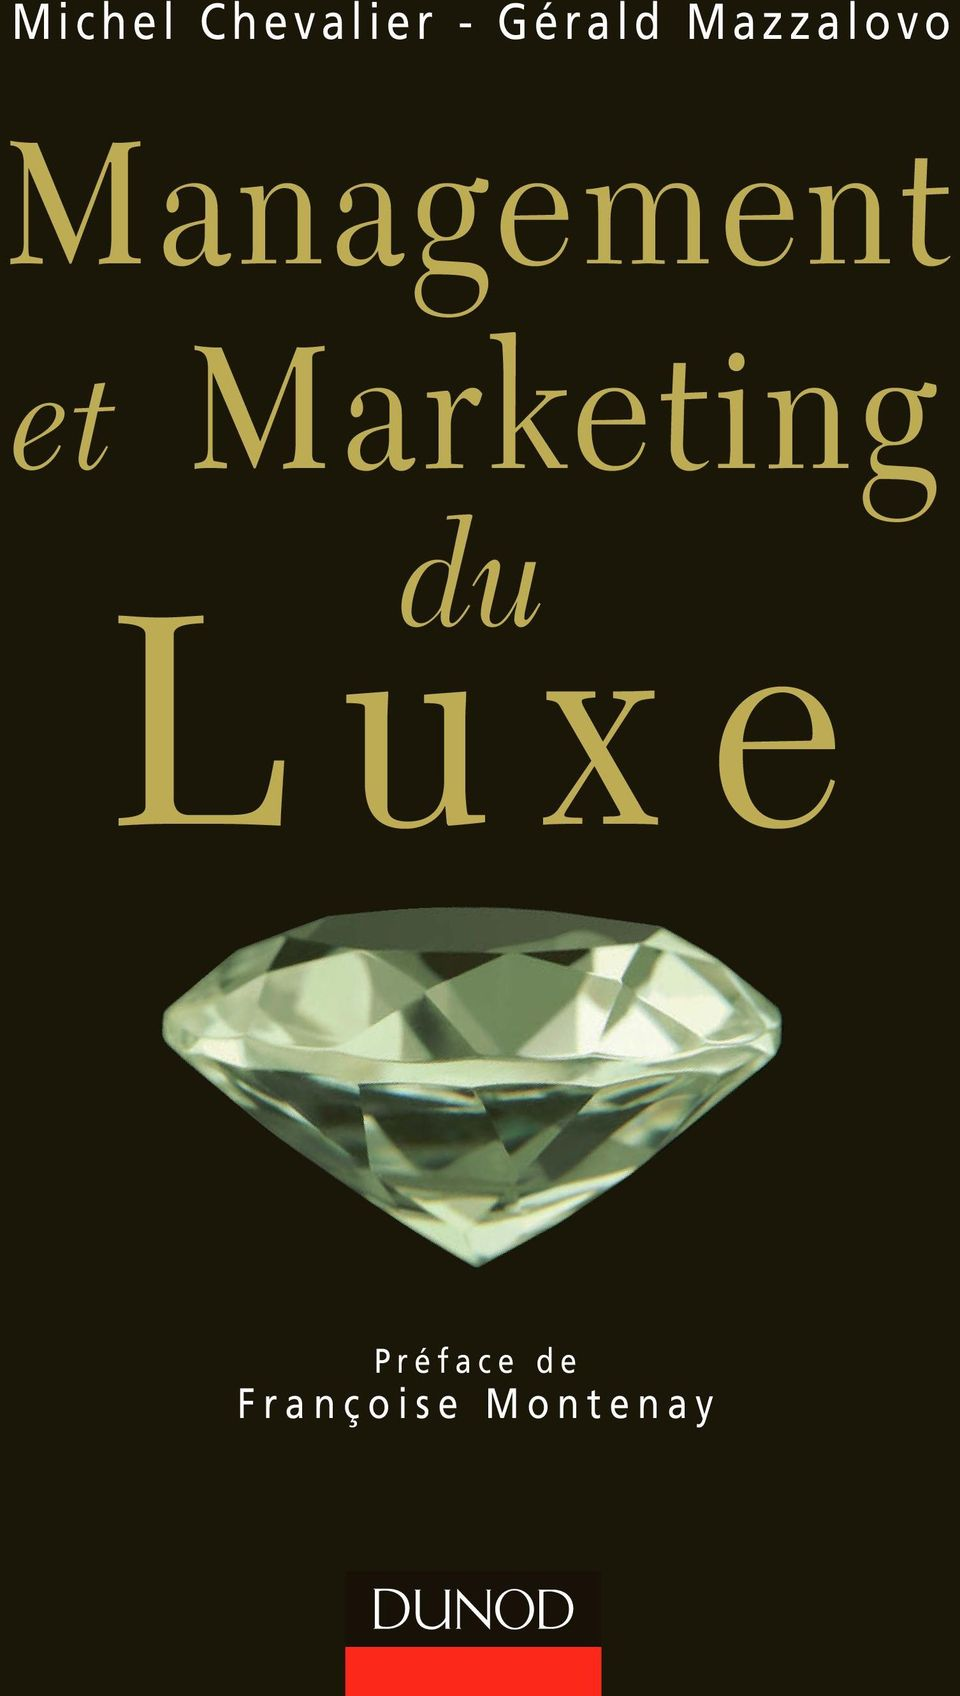 Management et Marketing